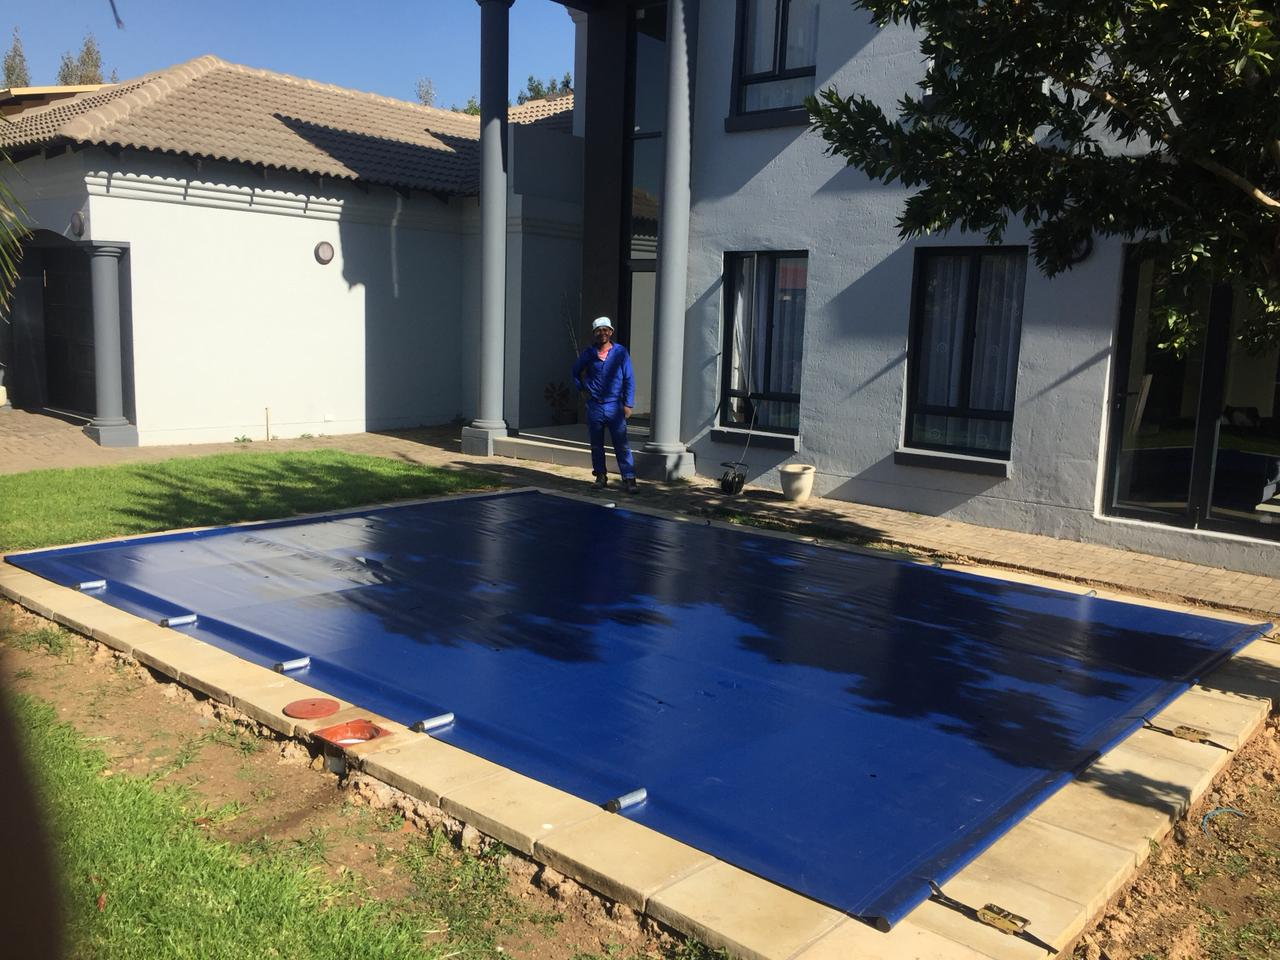 Pool Covers Pretoria - Secure and Cost Effective Pool Covers